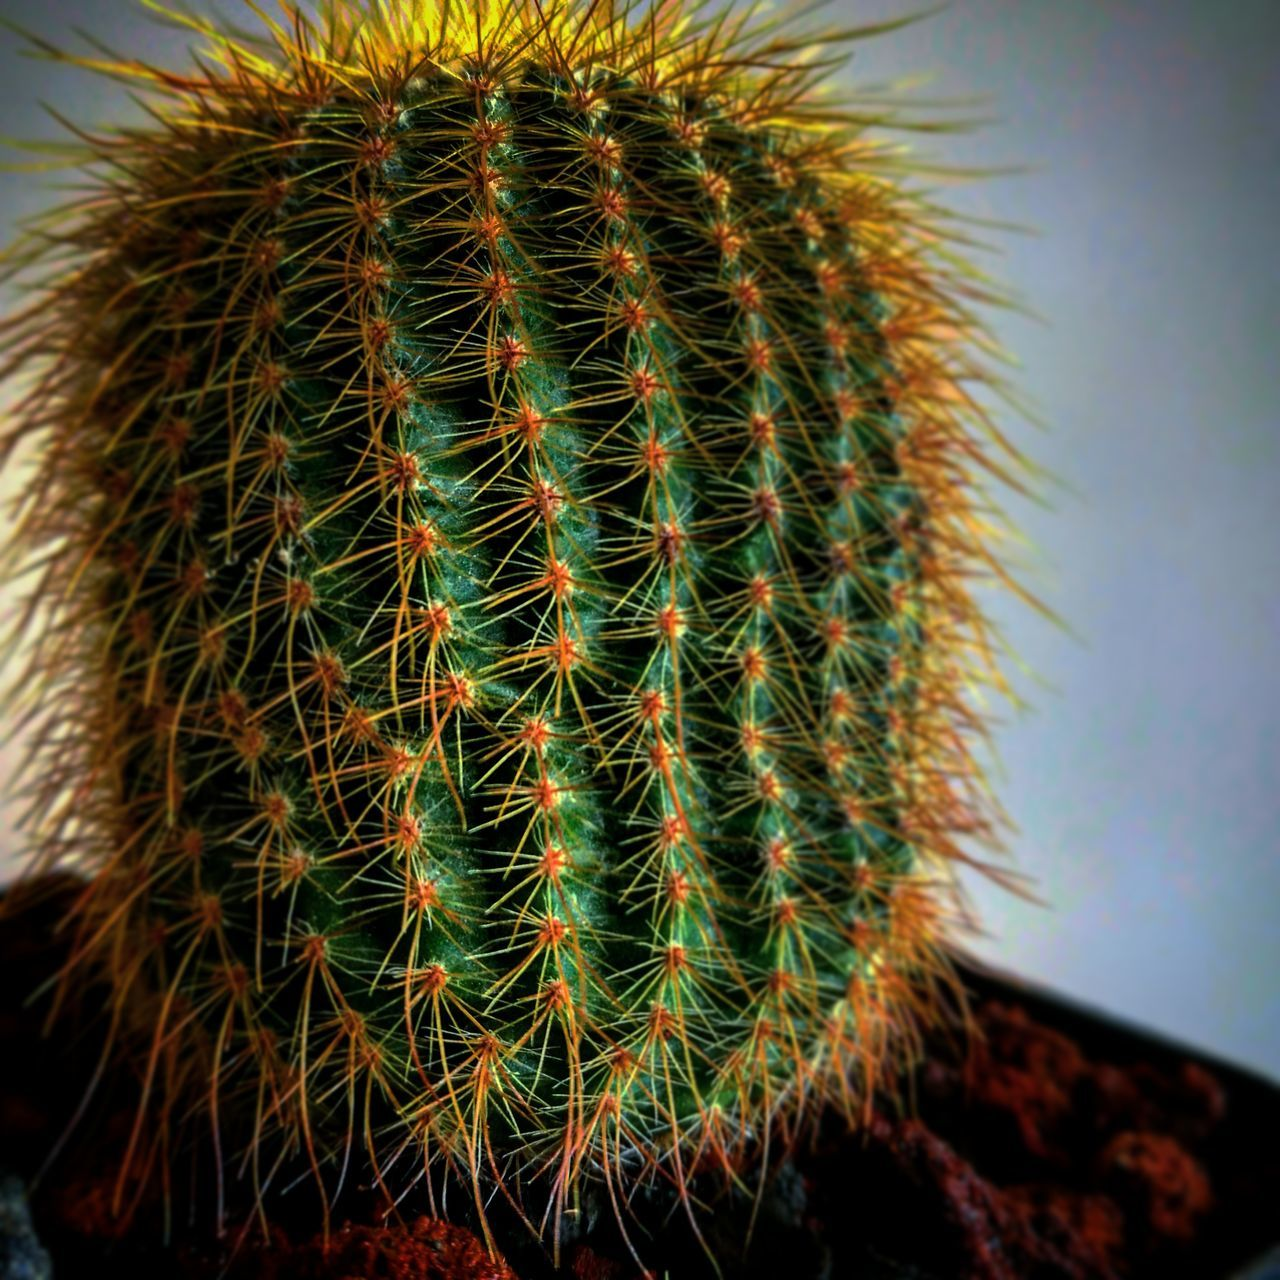 cactus, thorn, growth, spiked, barrel cactus, focus on foreground, plant, nature, green color, close-up, danger, no people, risk, beauty in nature, outdoors, day, saguaro cactus, sky